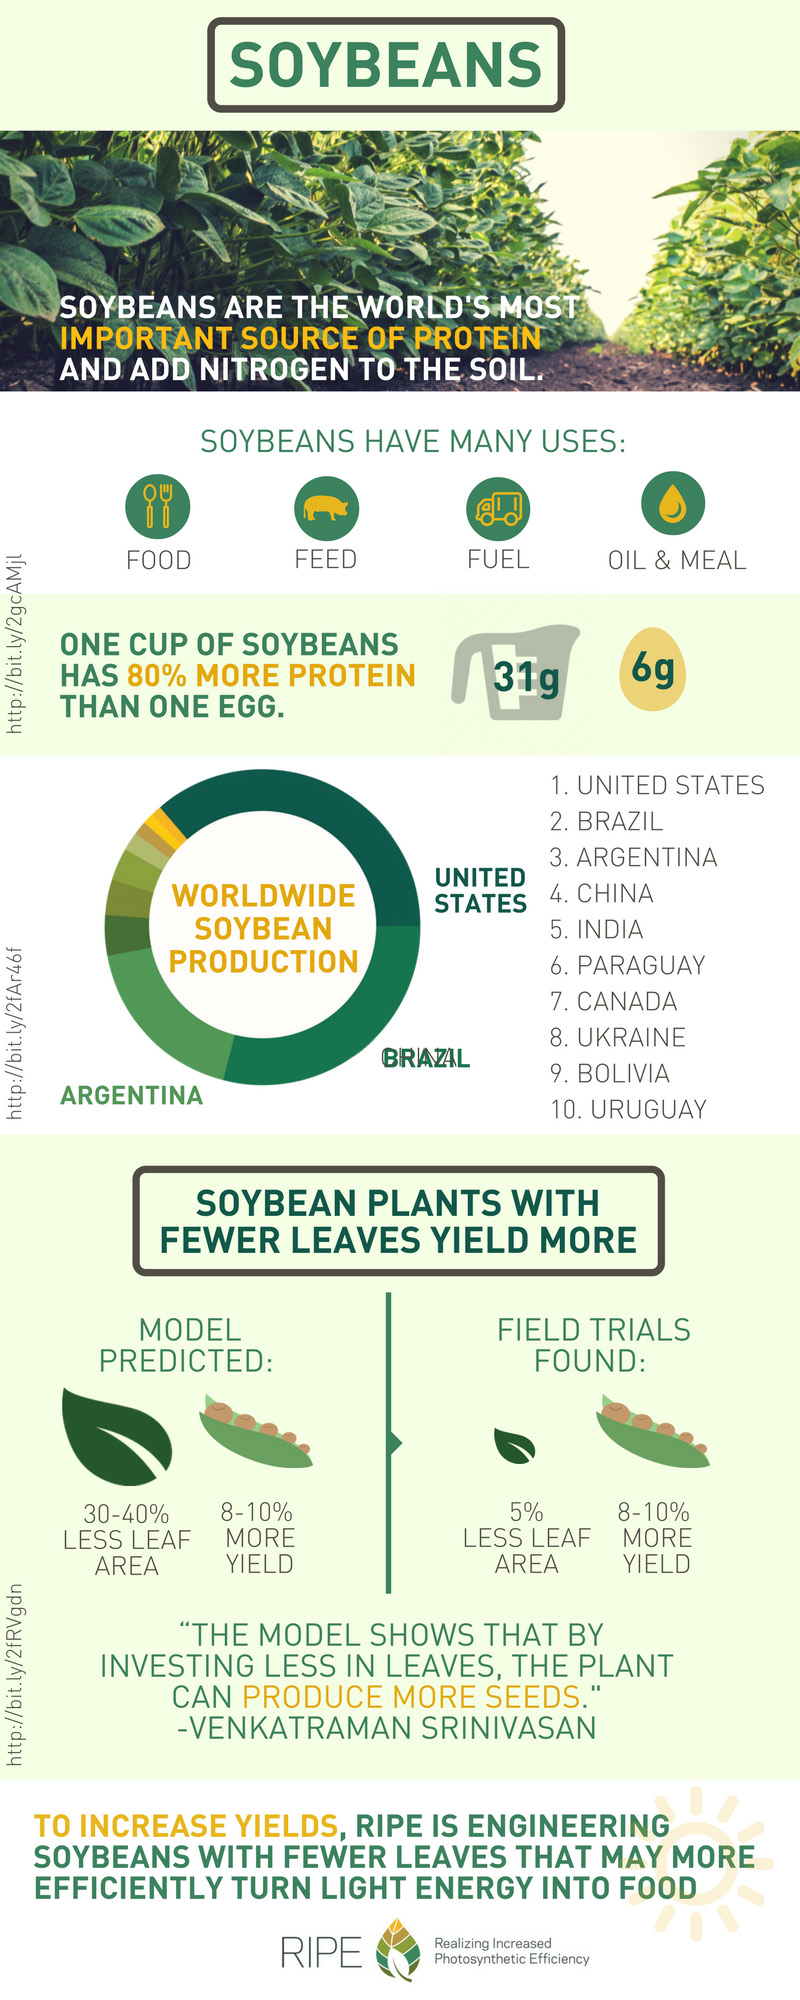 soybean plants with fewer leaves yield more